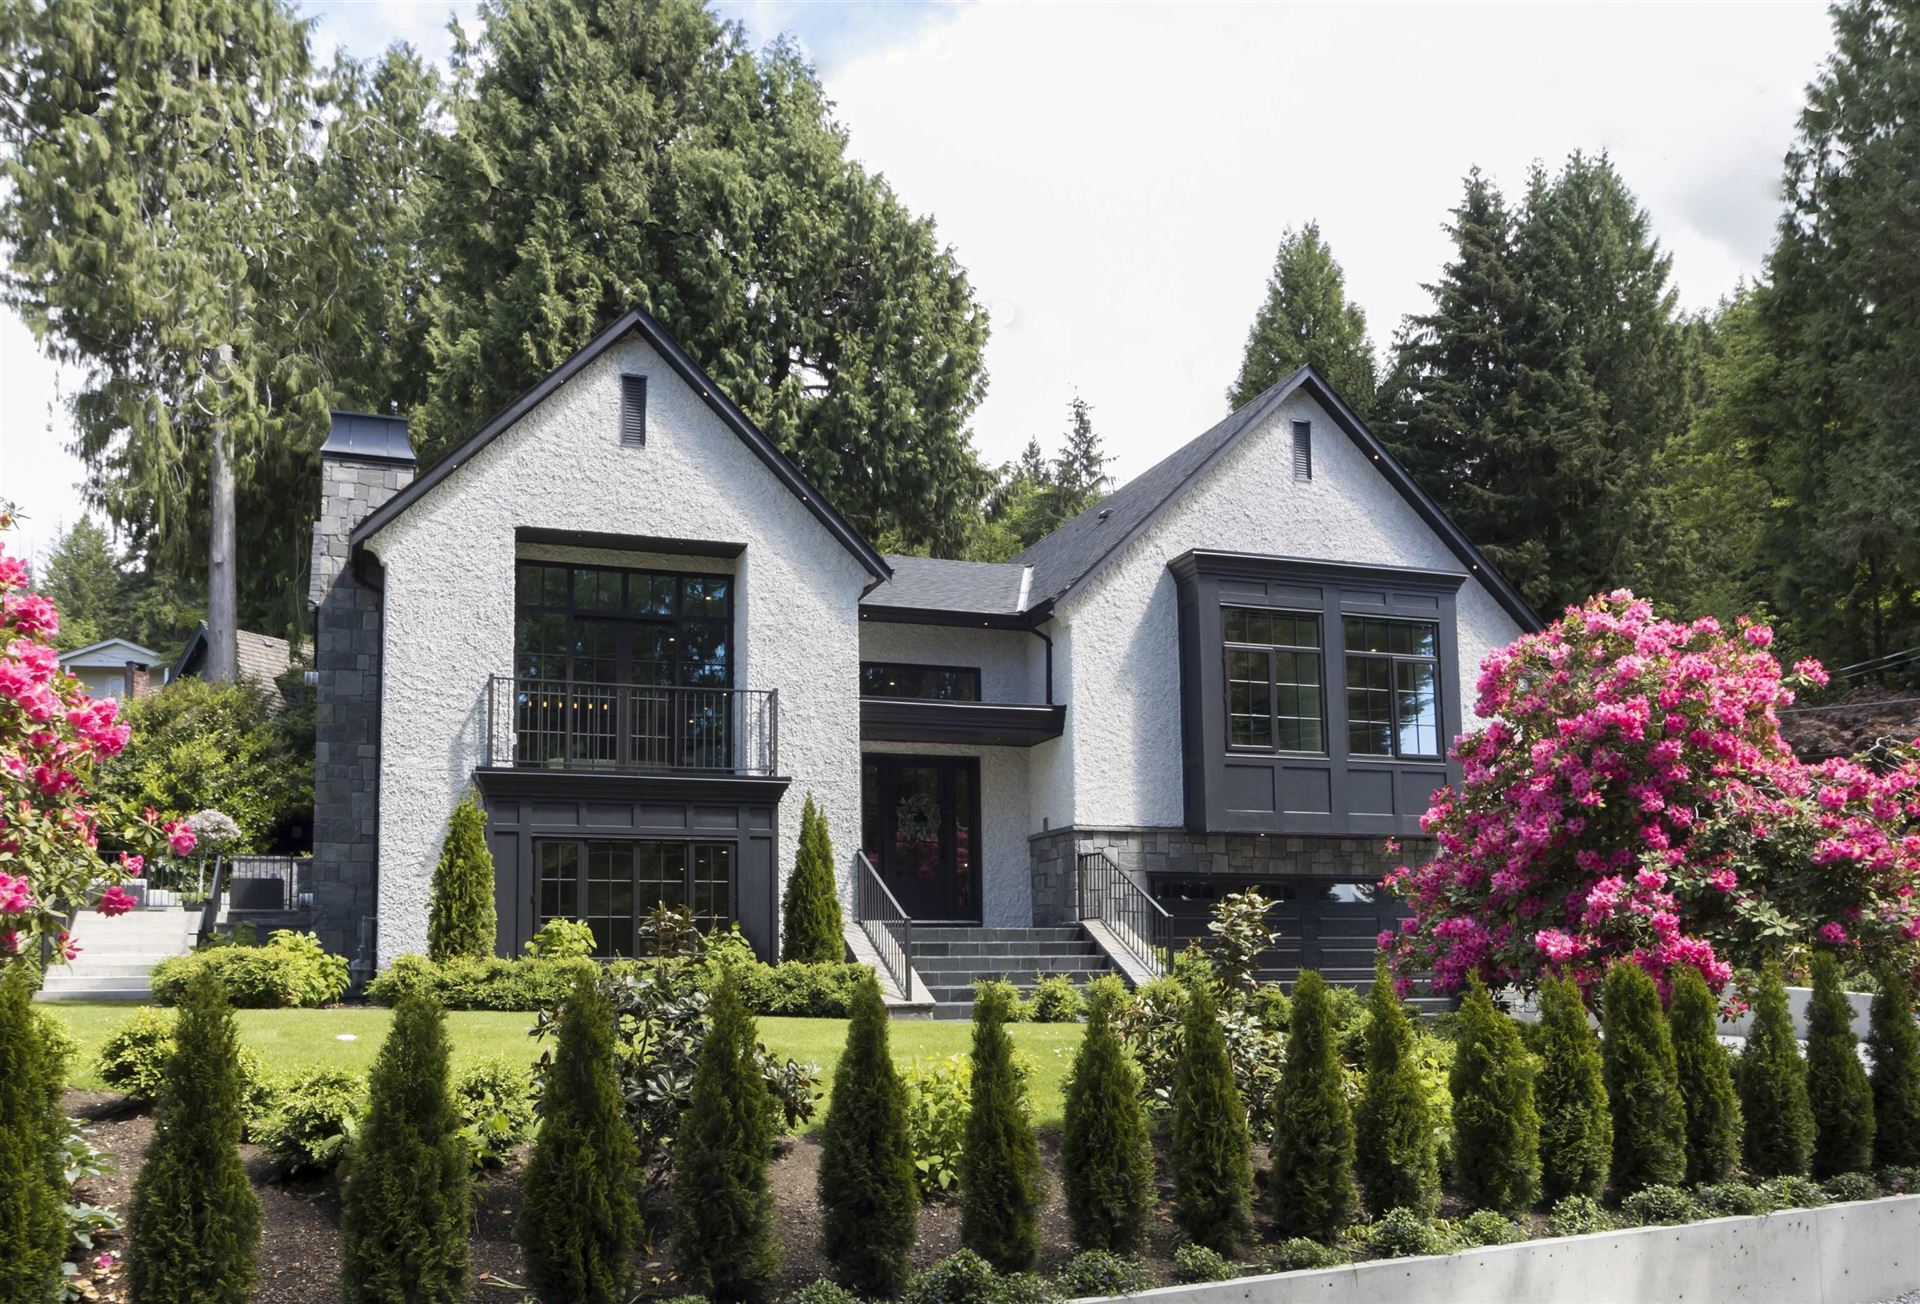 Photo of 4710 WILLOW PLACE, West Vancouver, BC V7W 1C5 (MLS # R2618718)